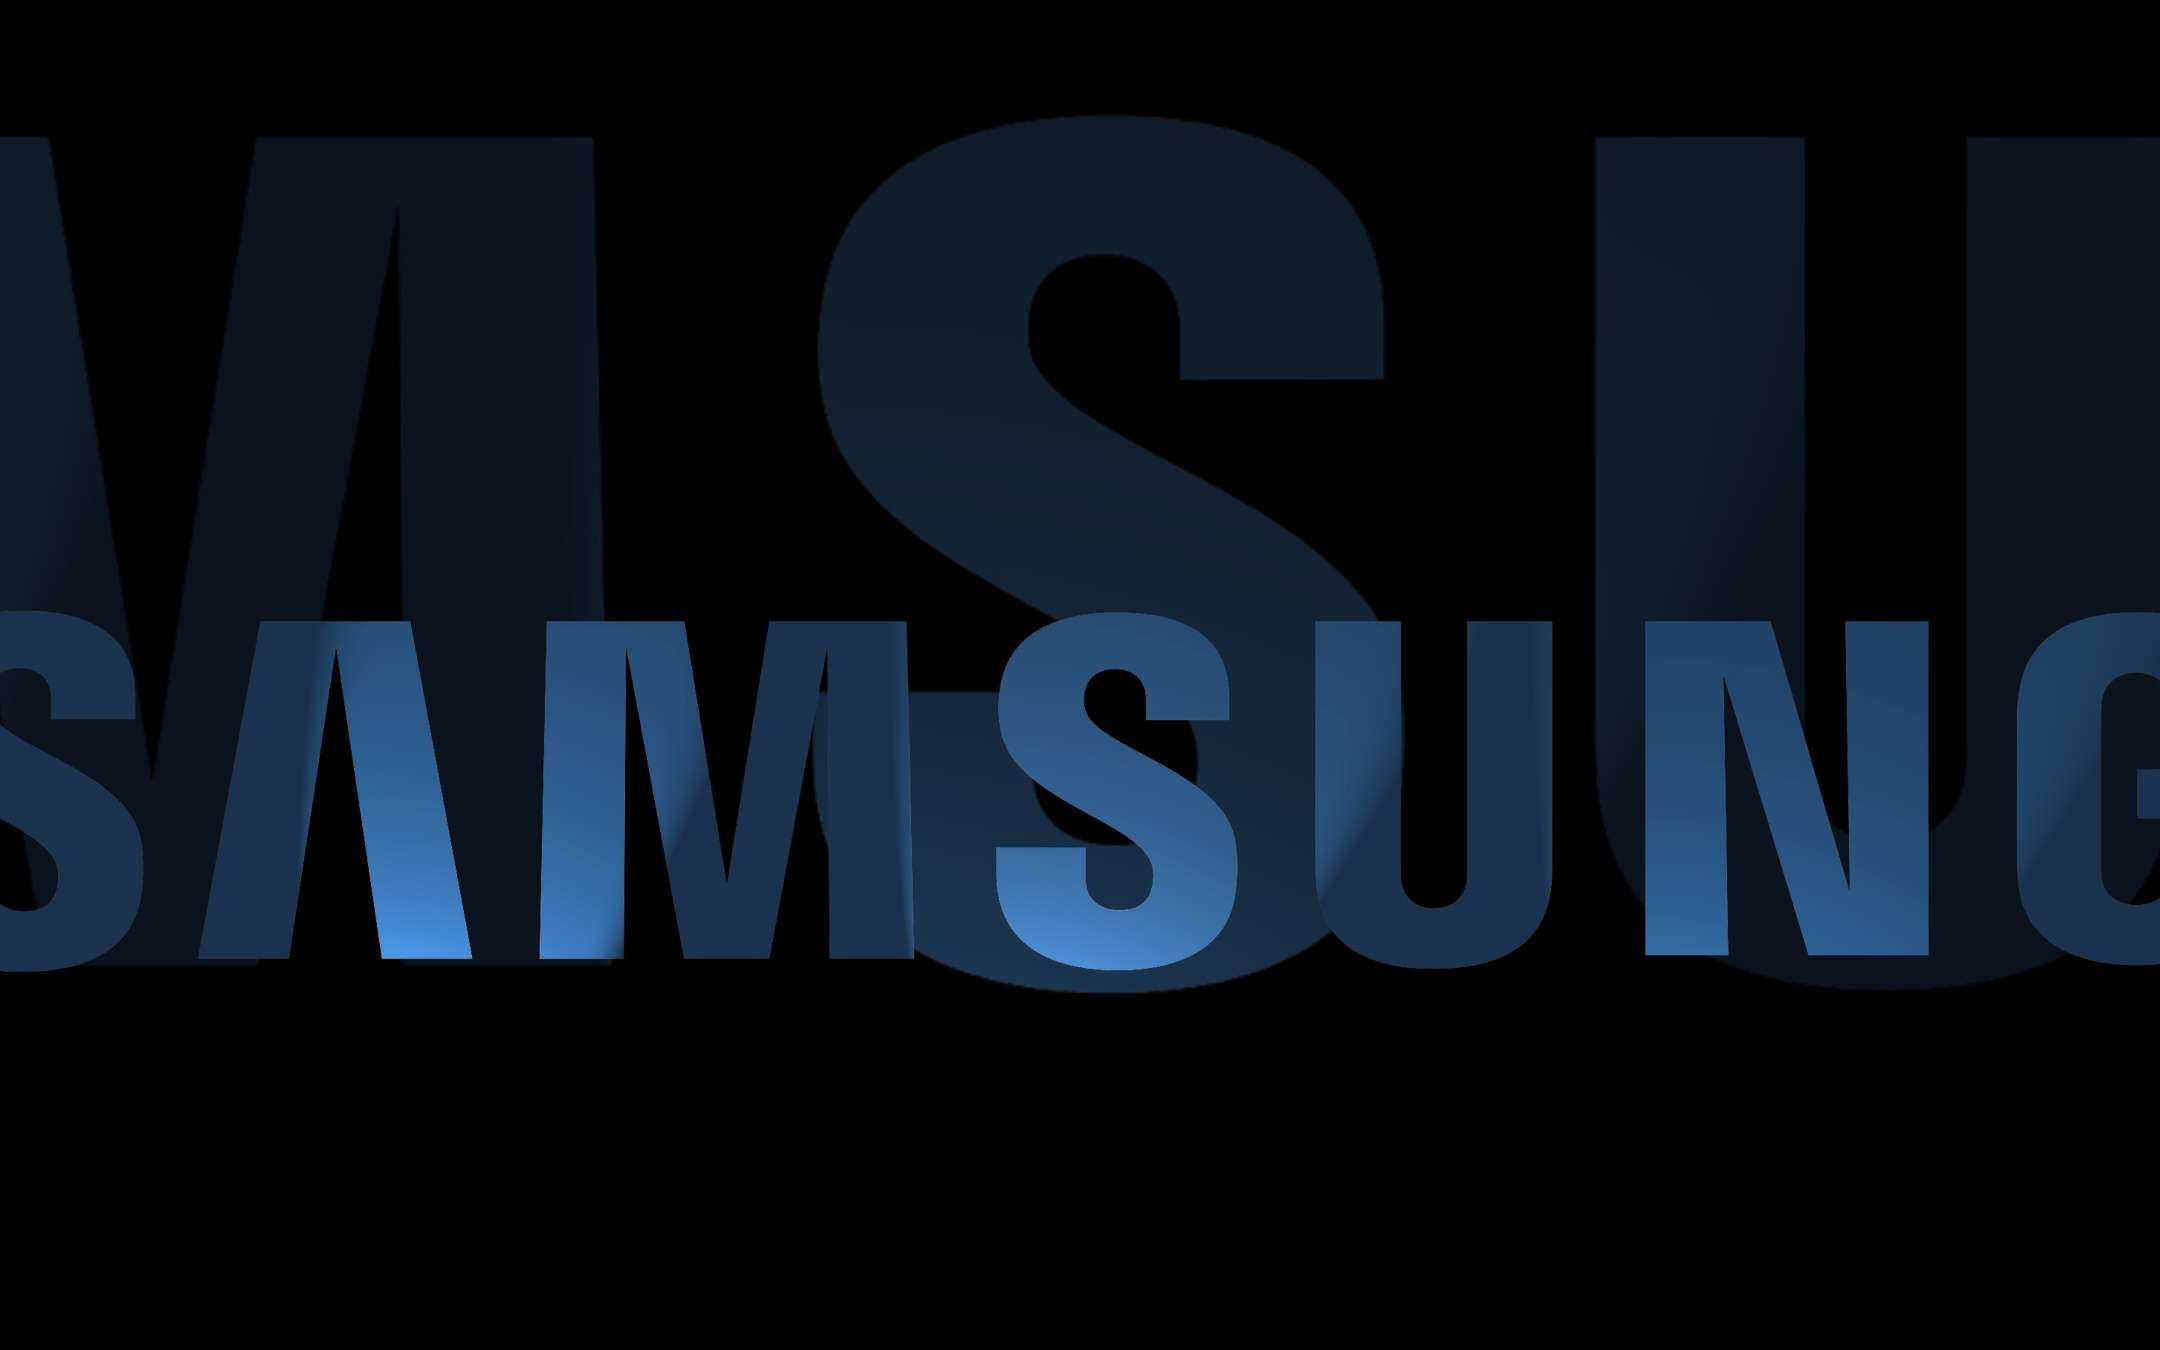 Samsung Smart Things, starting from the University